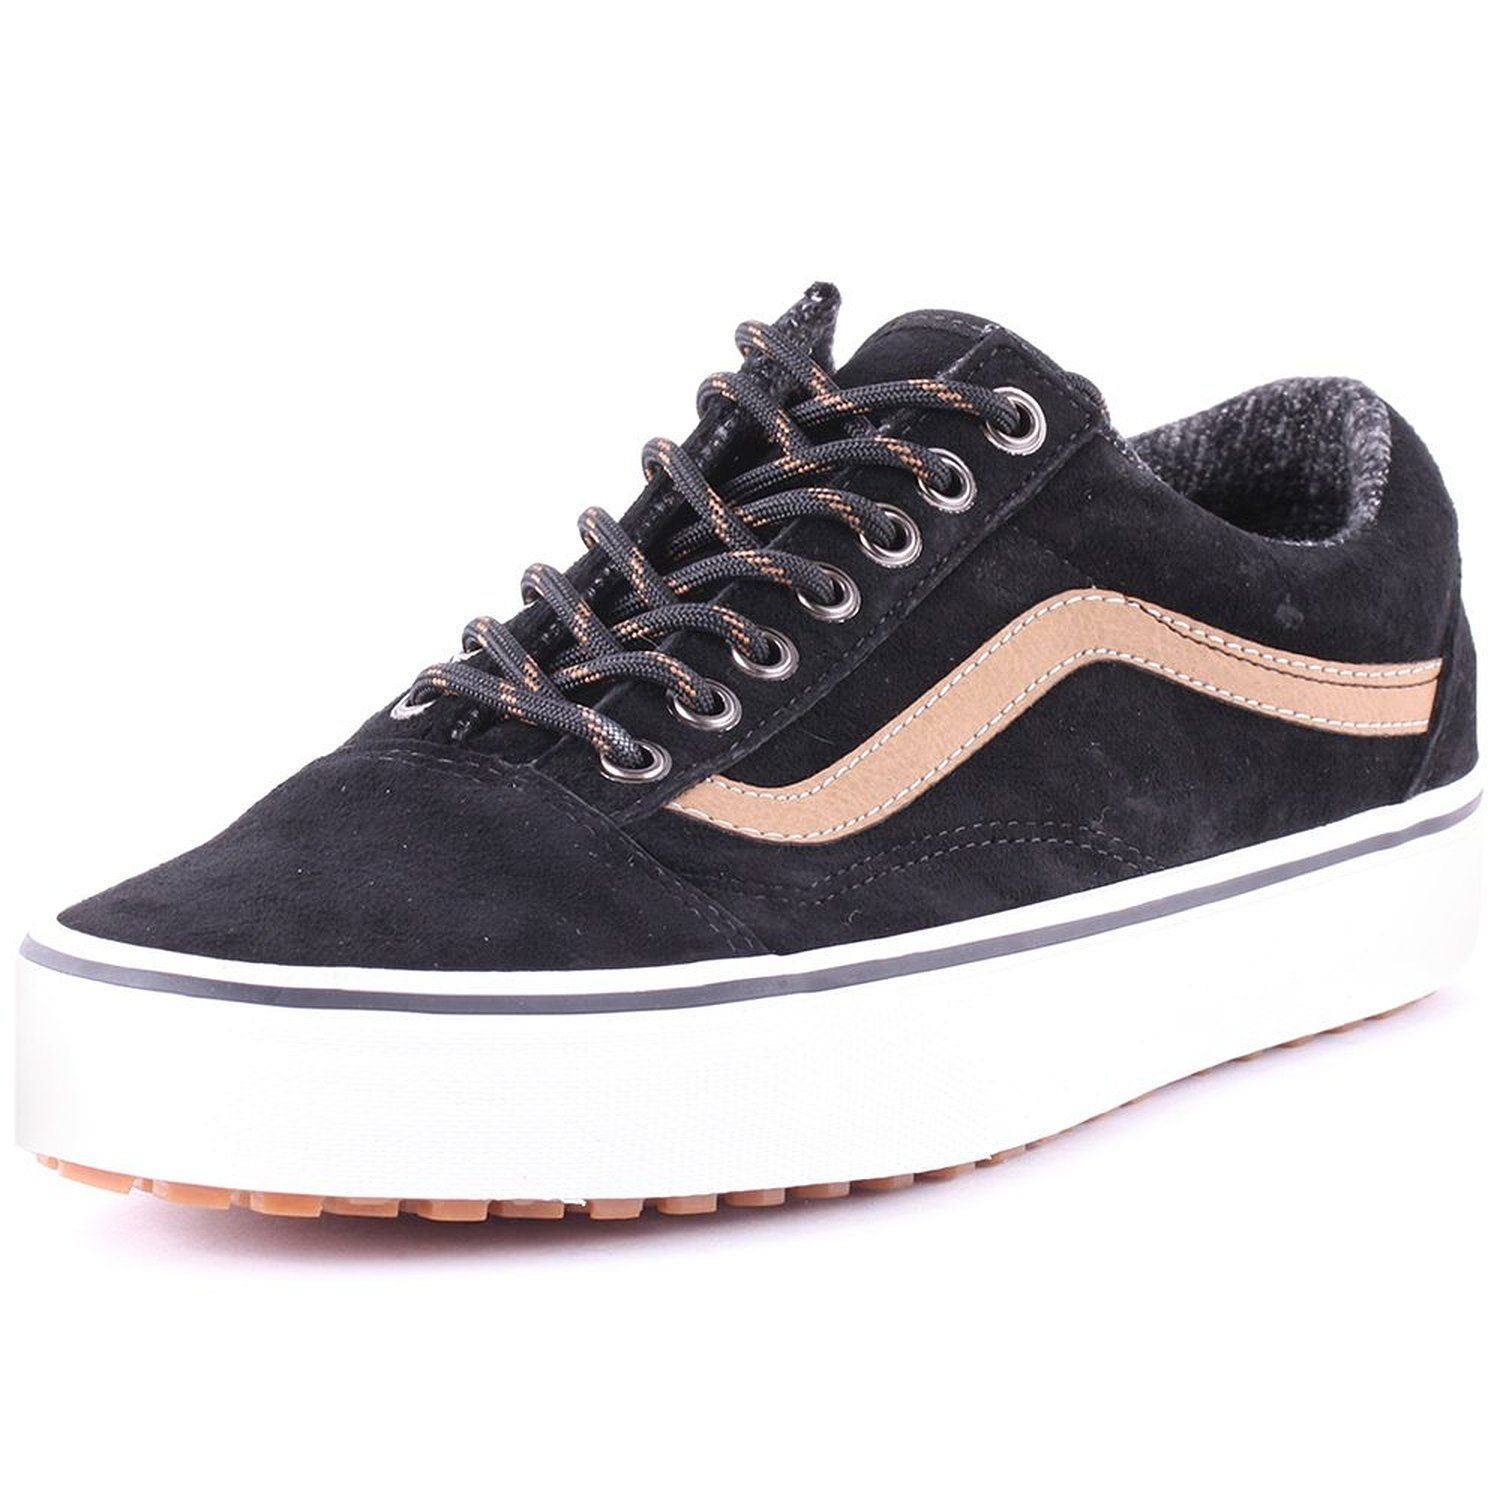 Vans Old Skool MTE Sneaker 40,5, black tabac brown: Amazon.fr ...